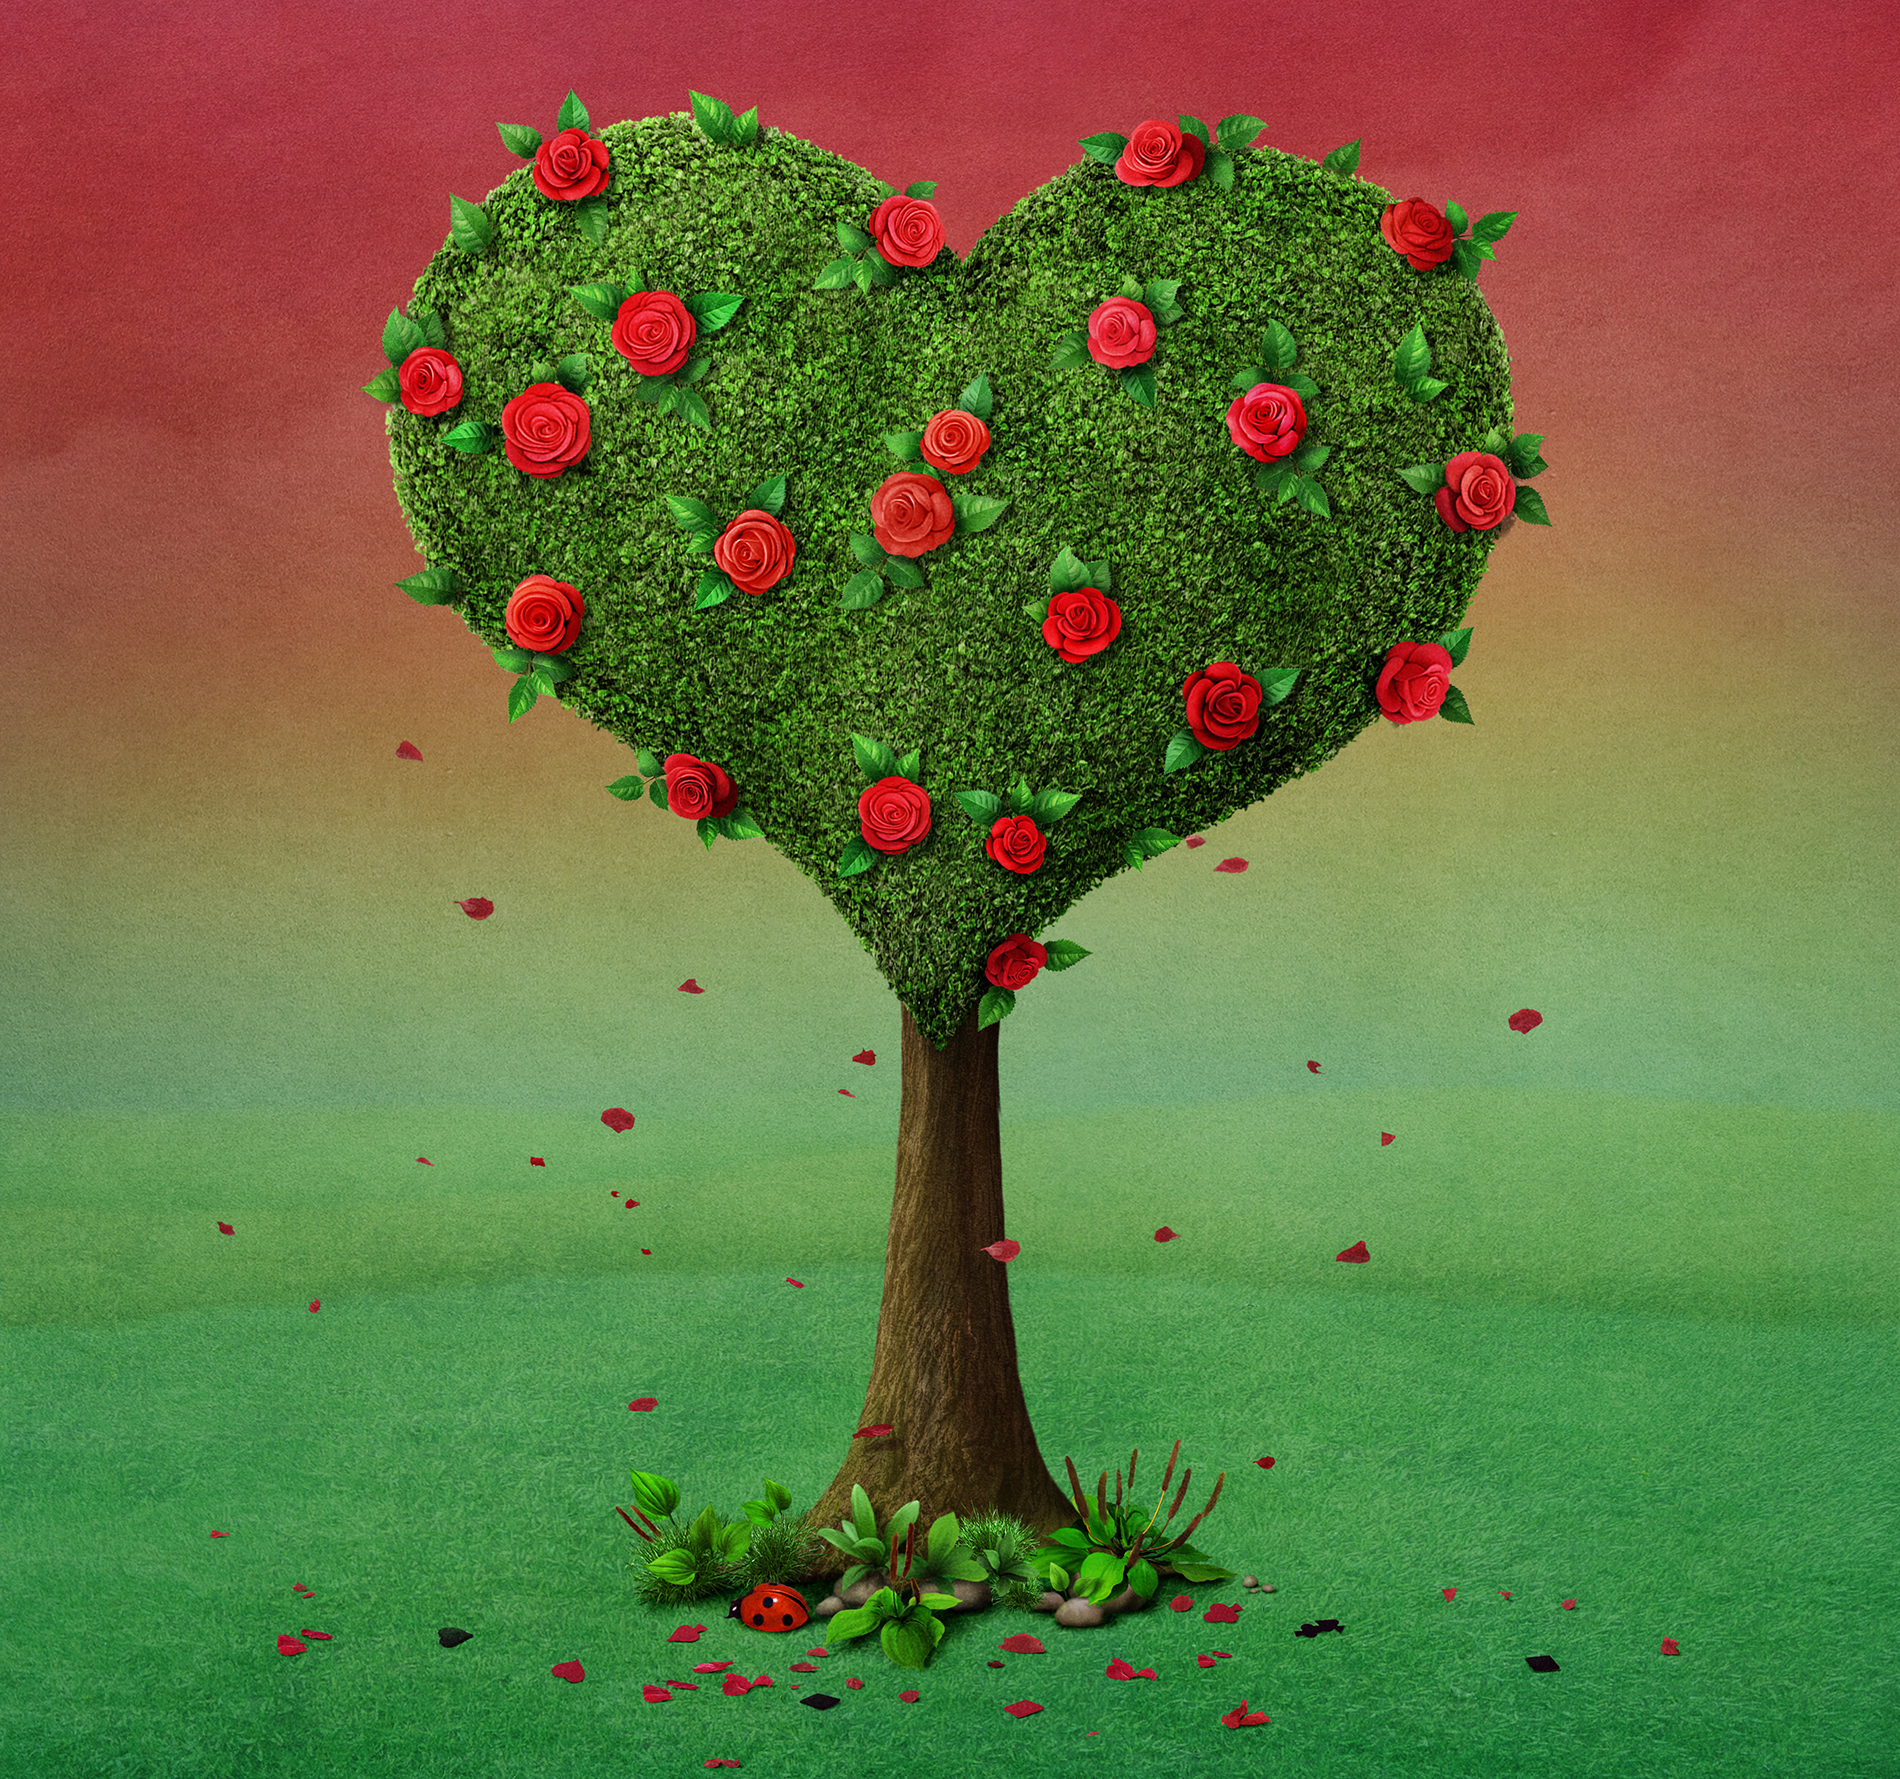 Heart shaped tree with falling petals 54933